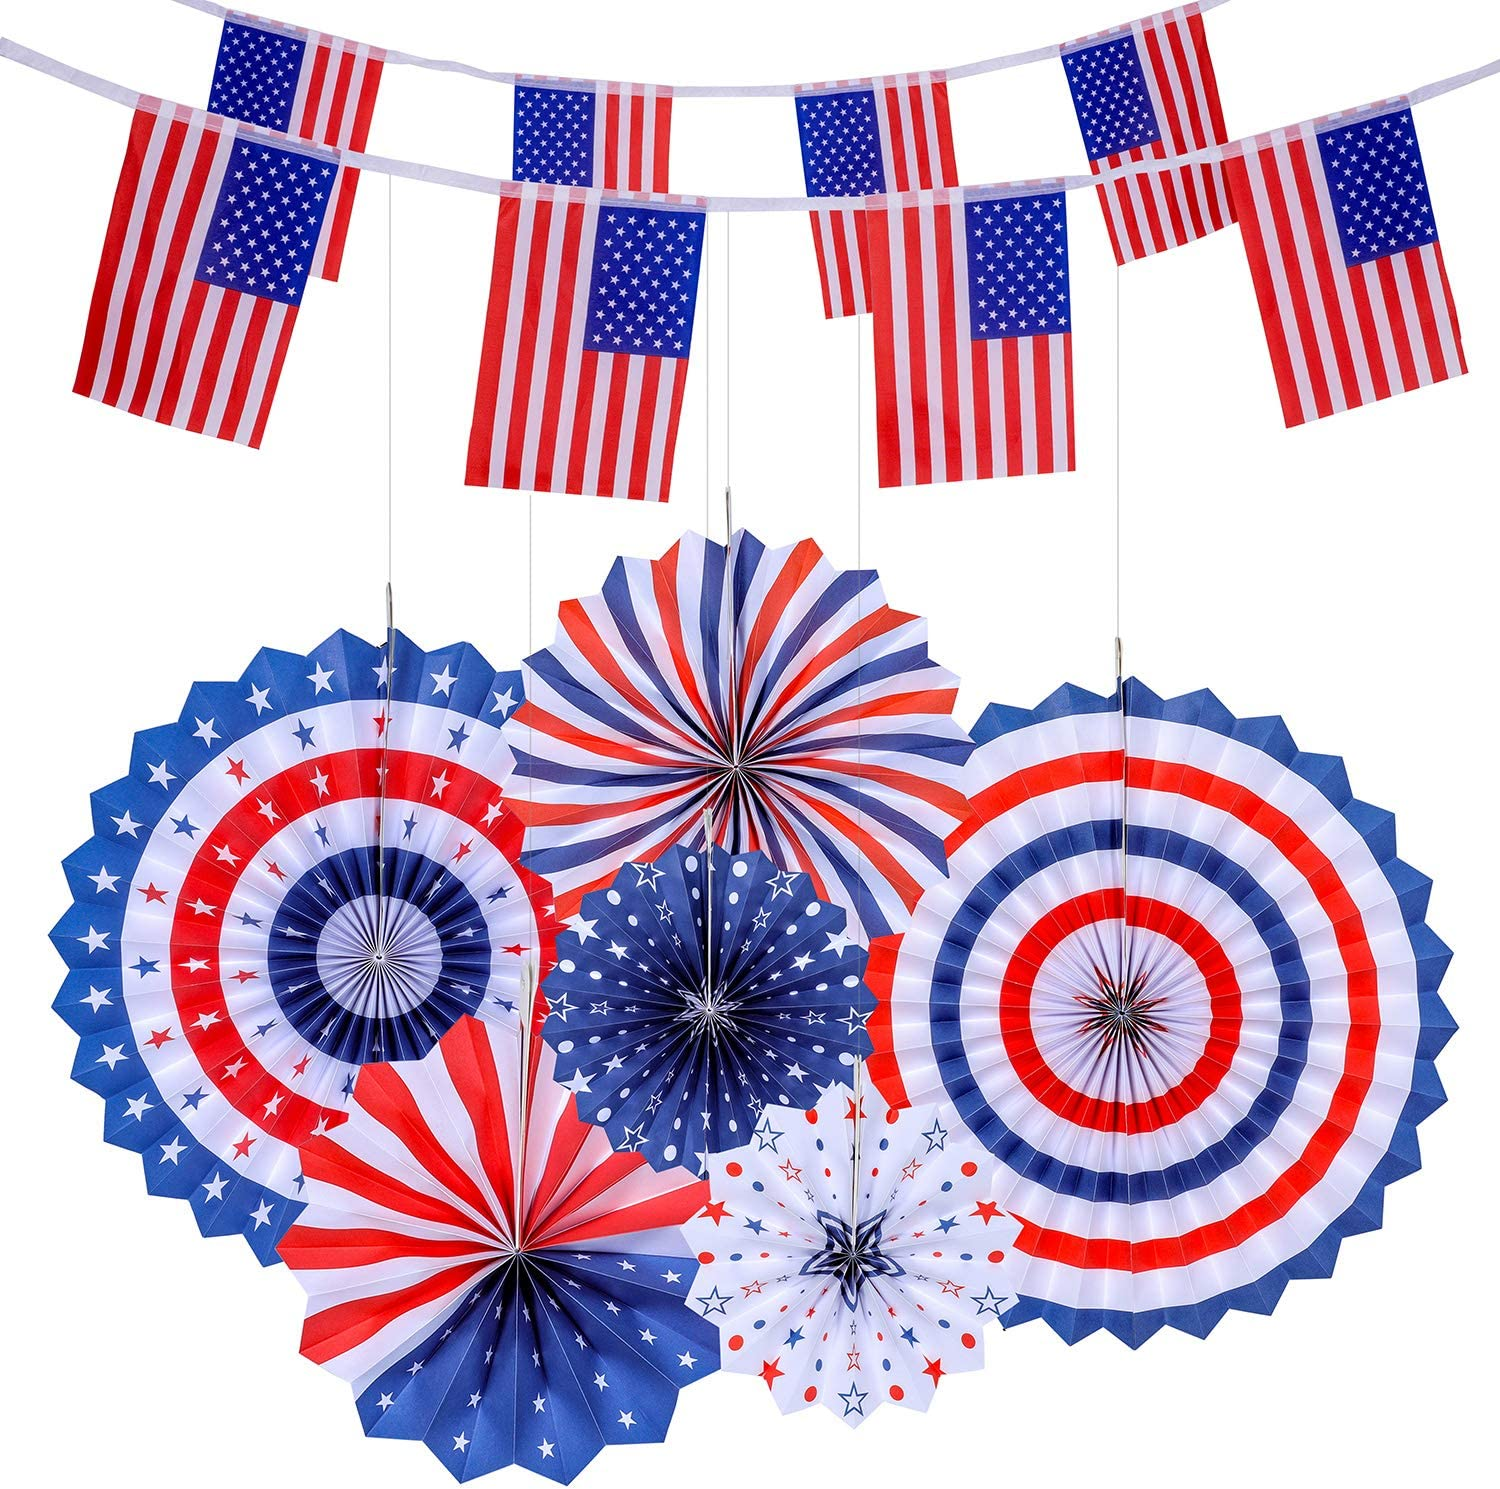 Kitdine 4th of July Patriotic Decorations - 6 Hanging Paper Fans and 2 American Flag Banners(40 USA Flags), Independence Day Red White Blue Decro, USA Theme Party Decor Supplies